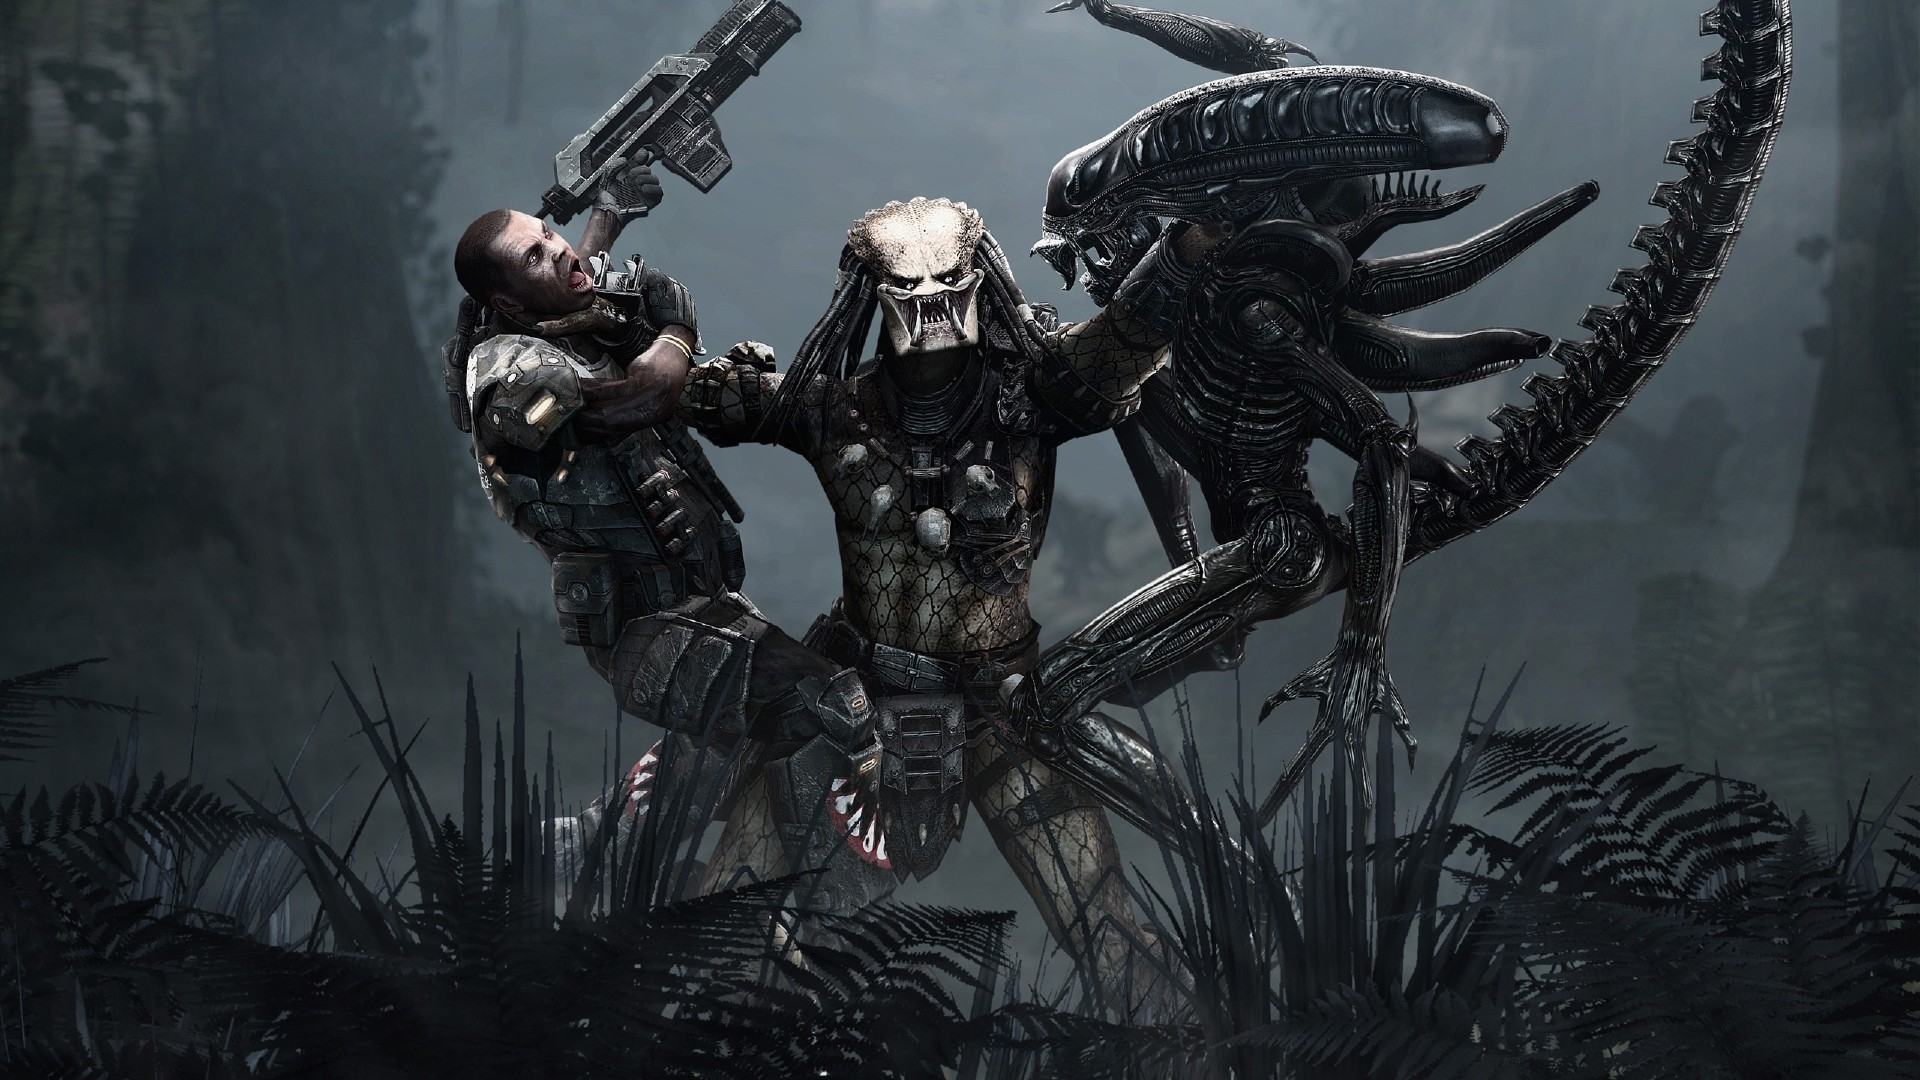 1920x1080 ... Full HD Wallpaper alien vs predator scramble monster jungle rifle .